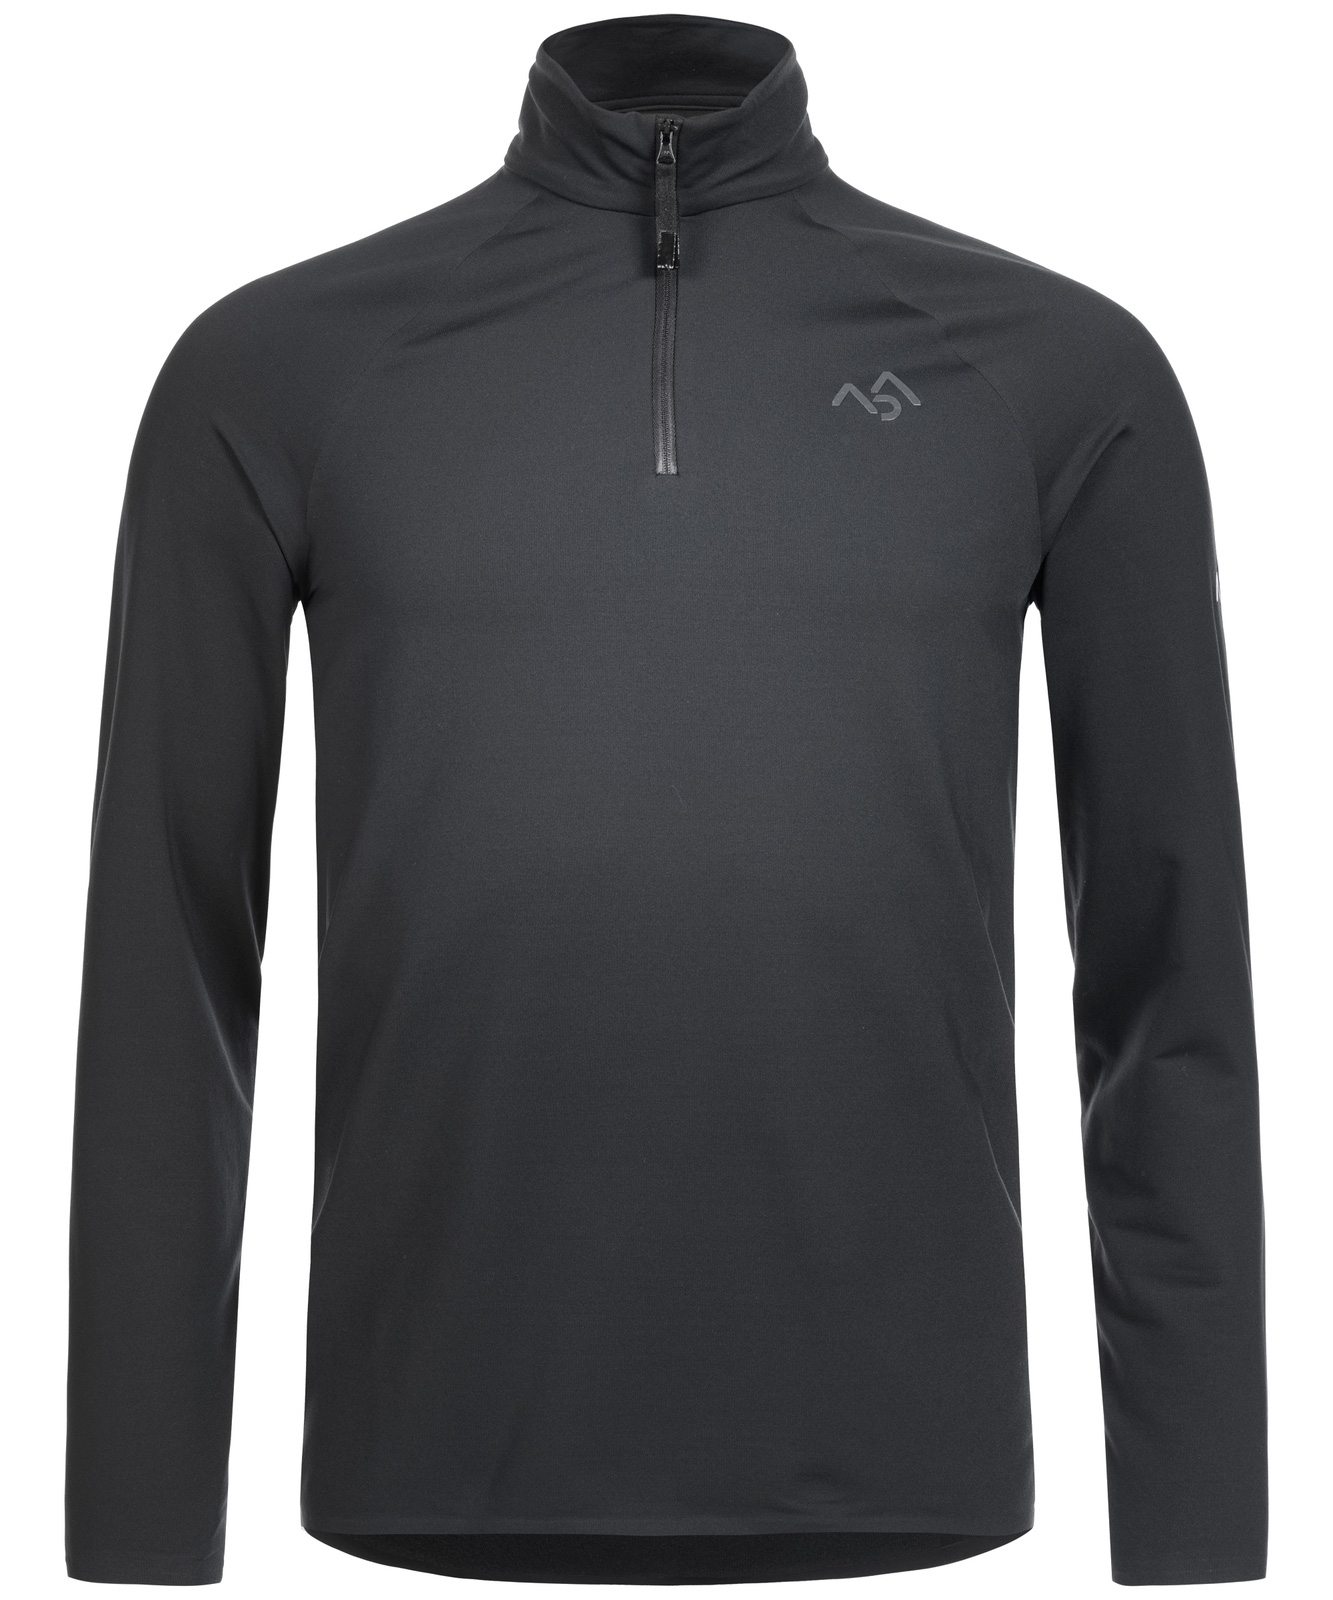 MB2 Fleece Zip Shirt LS